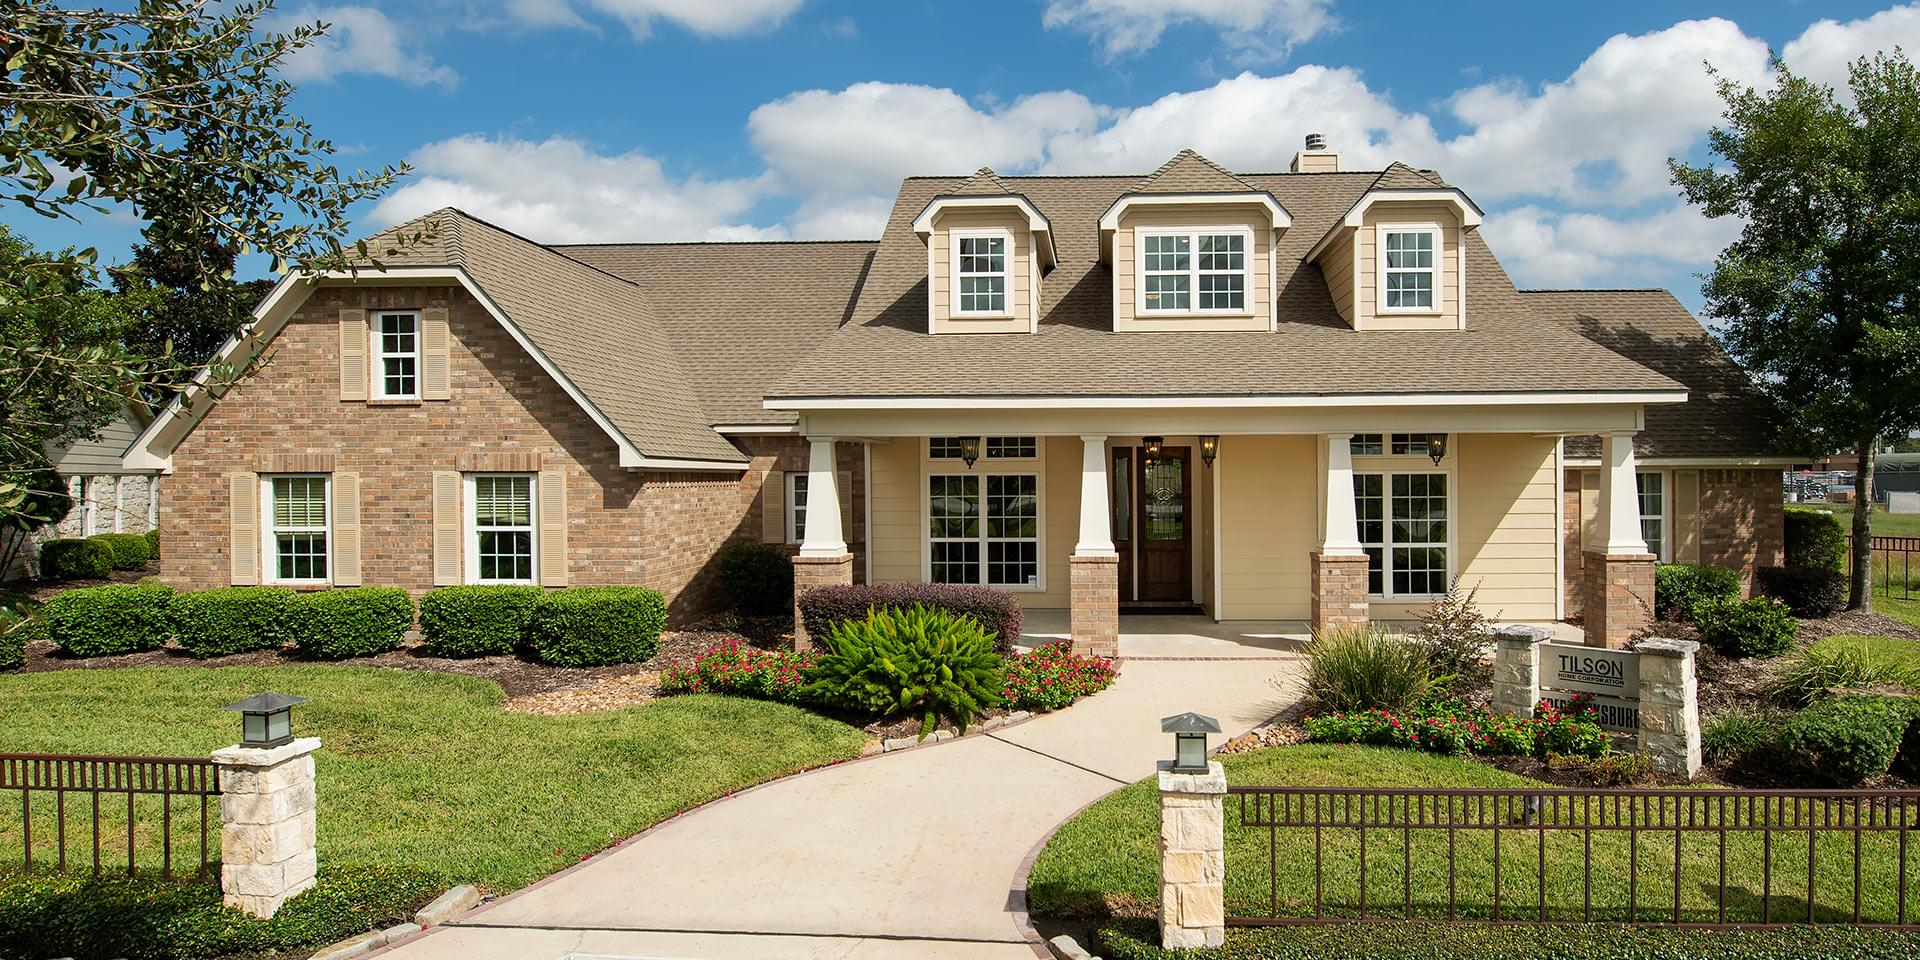 The Fredericksburg Custom Home Plan from Tilson Homes